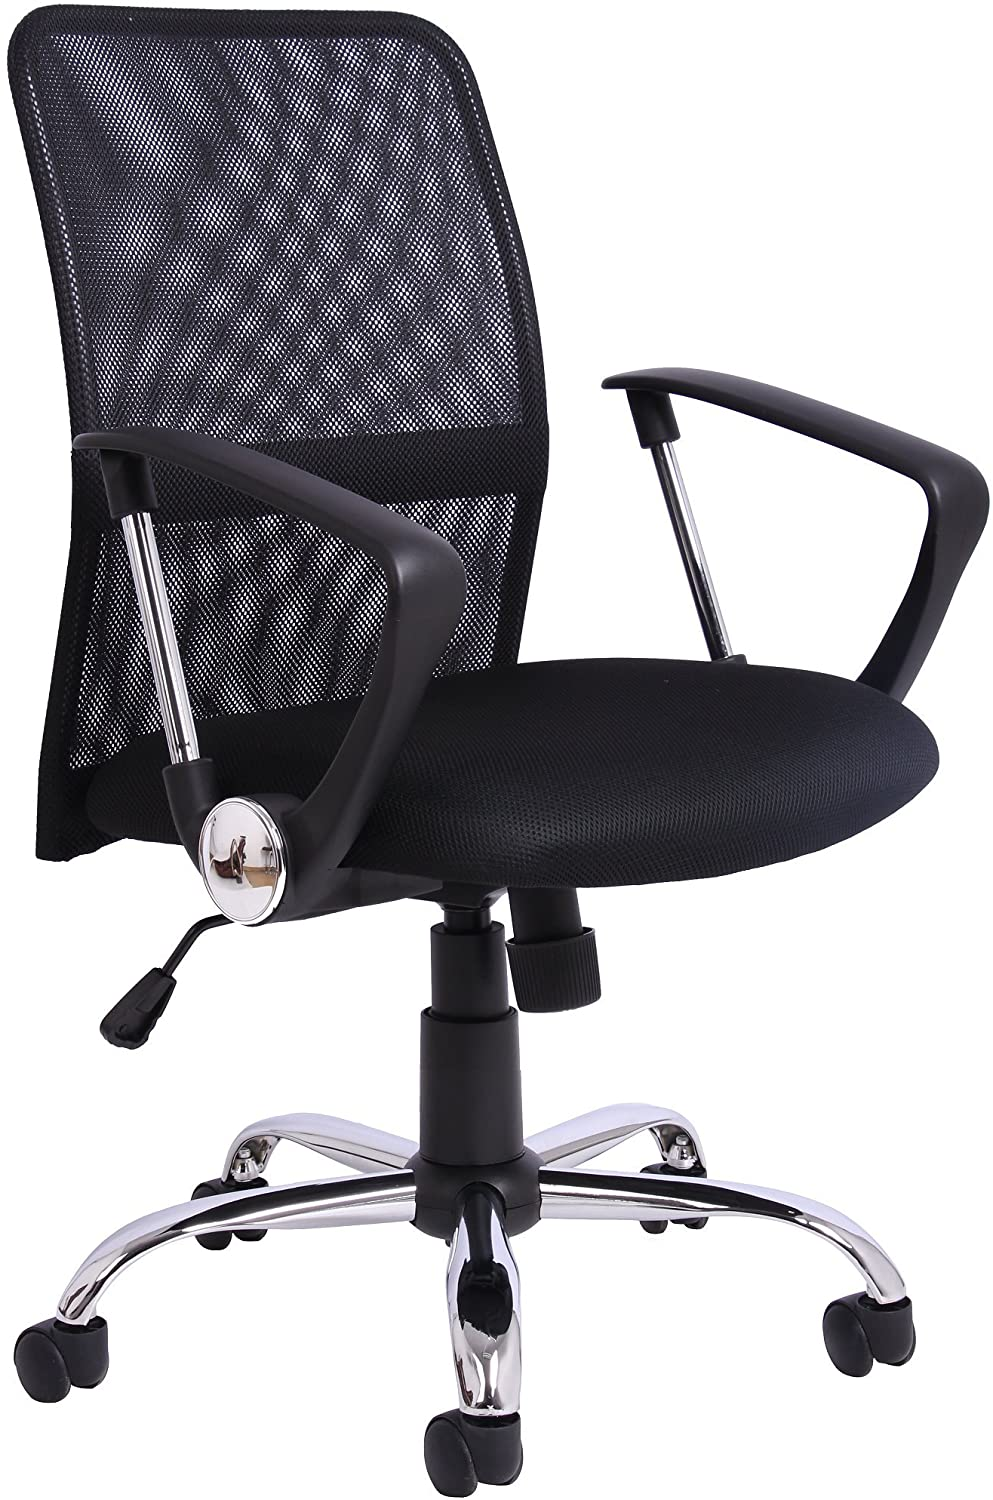 Office Essential Durable Office Chair